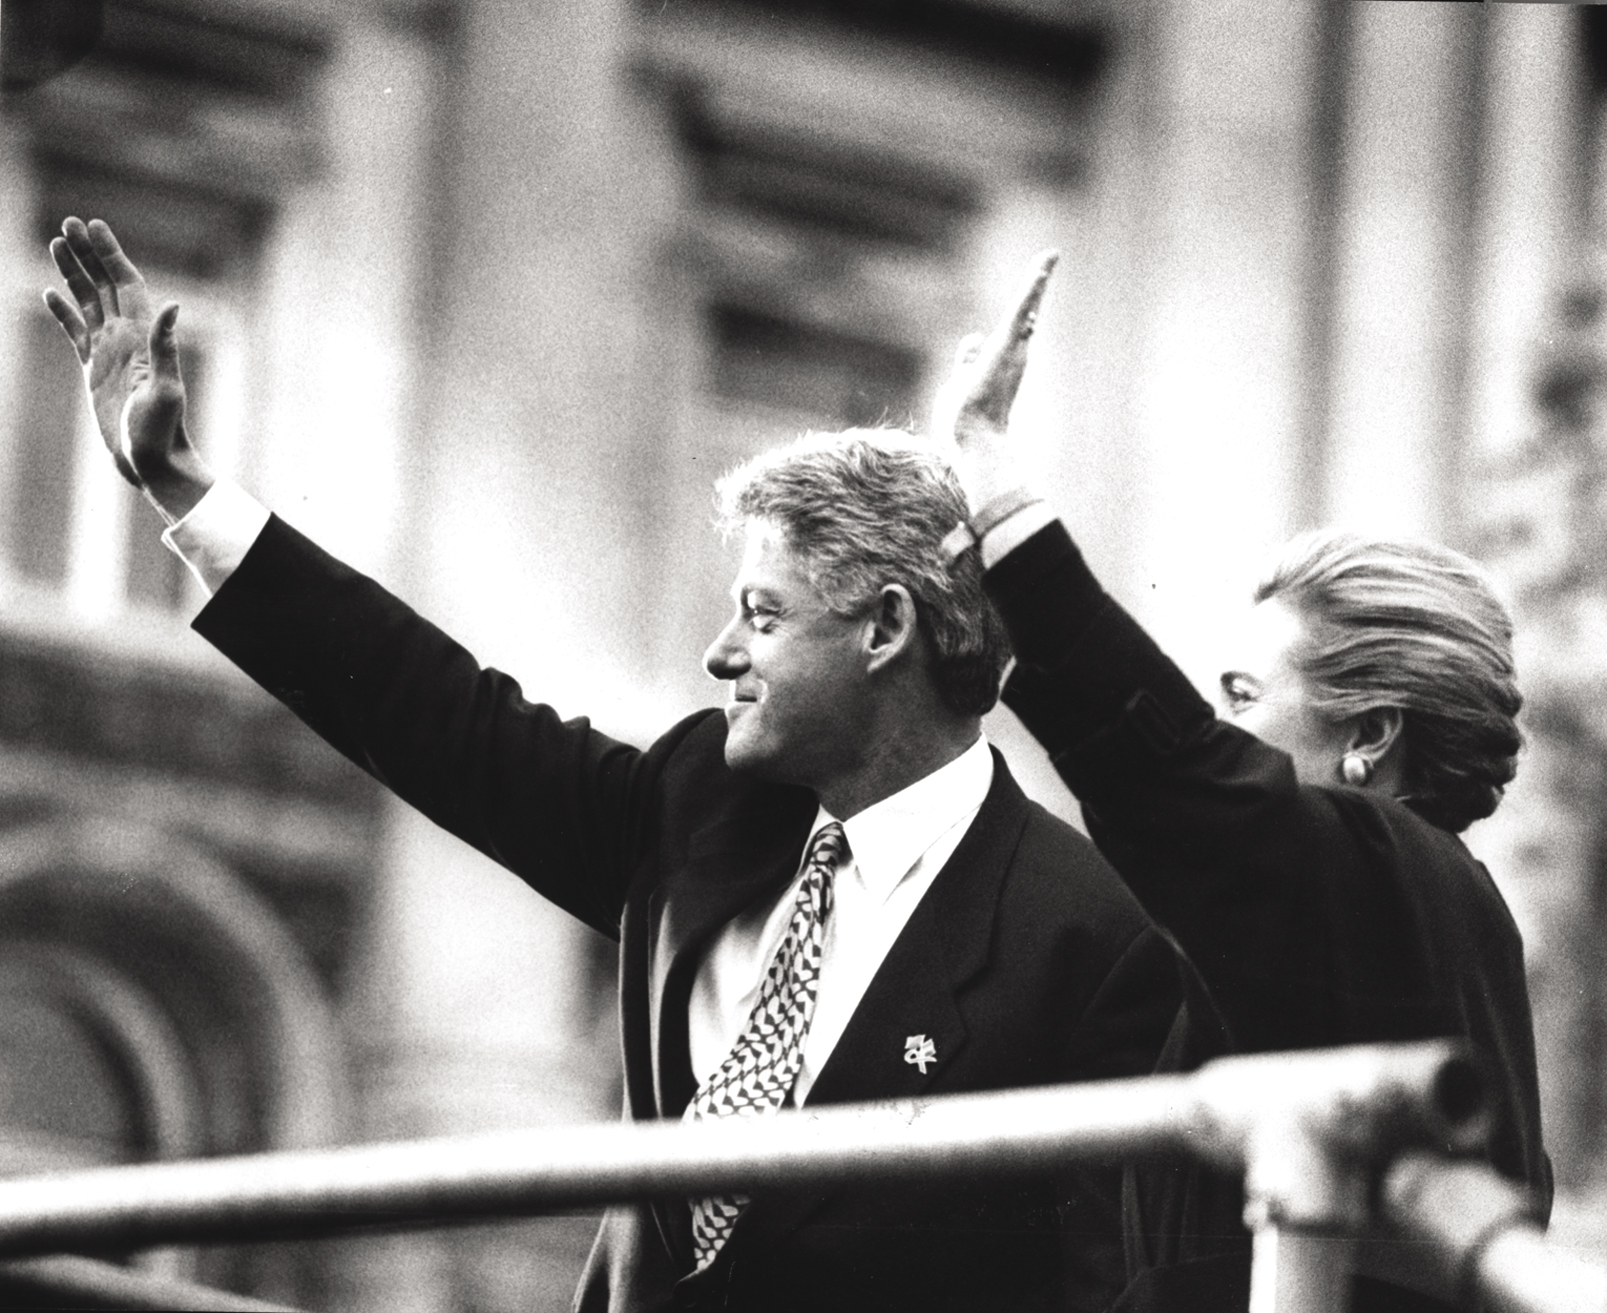 President and Hillary Clinton in Derry, November 30, 1995.